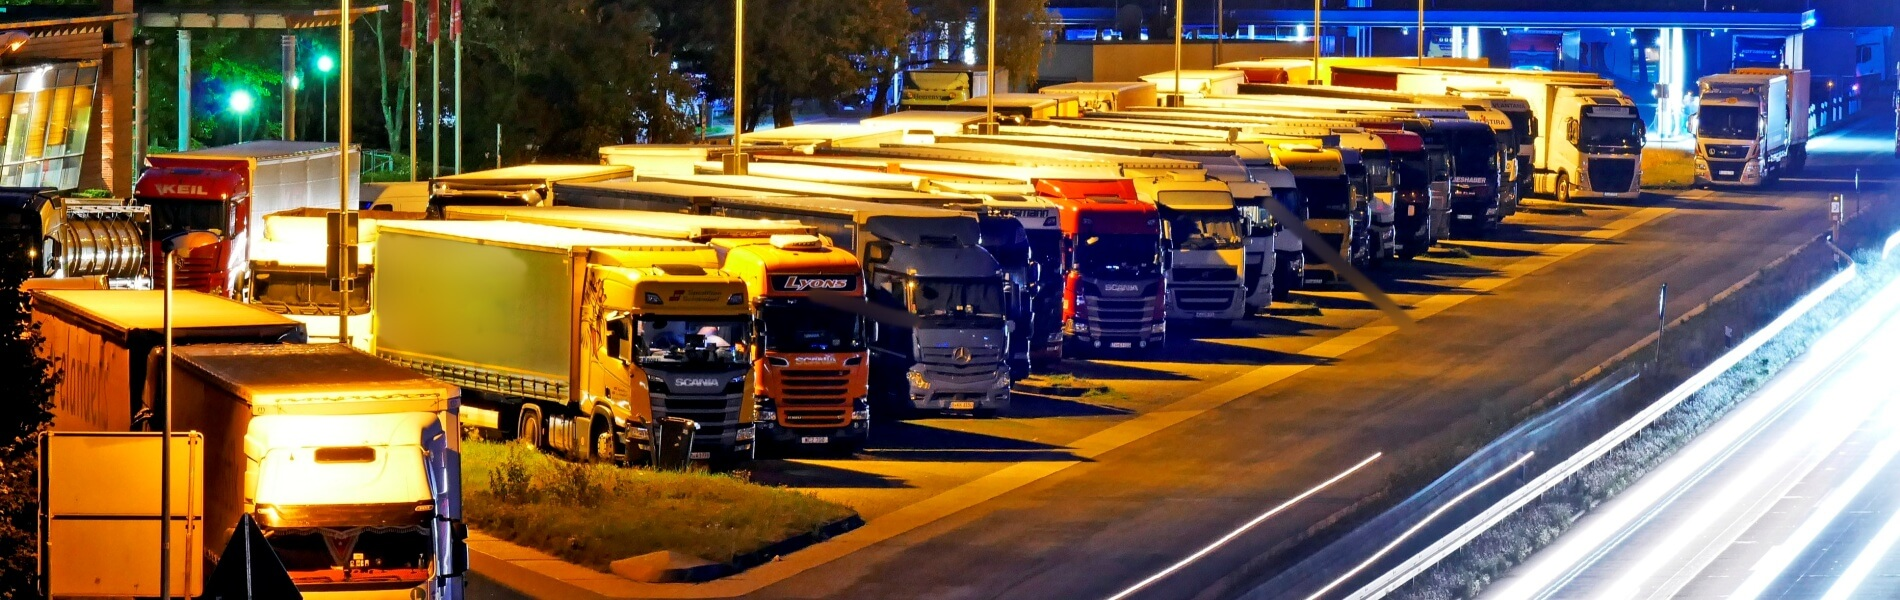 Truck parking spaces in short supply – digital solutions can help